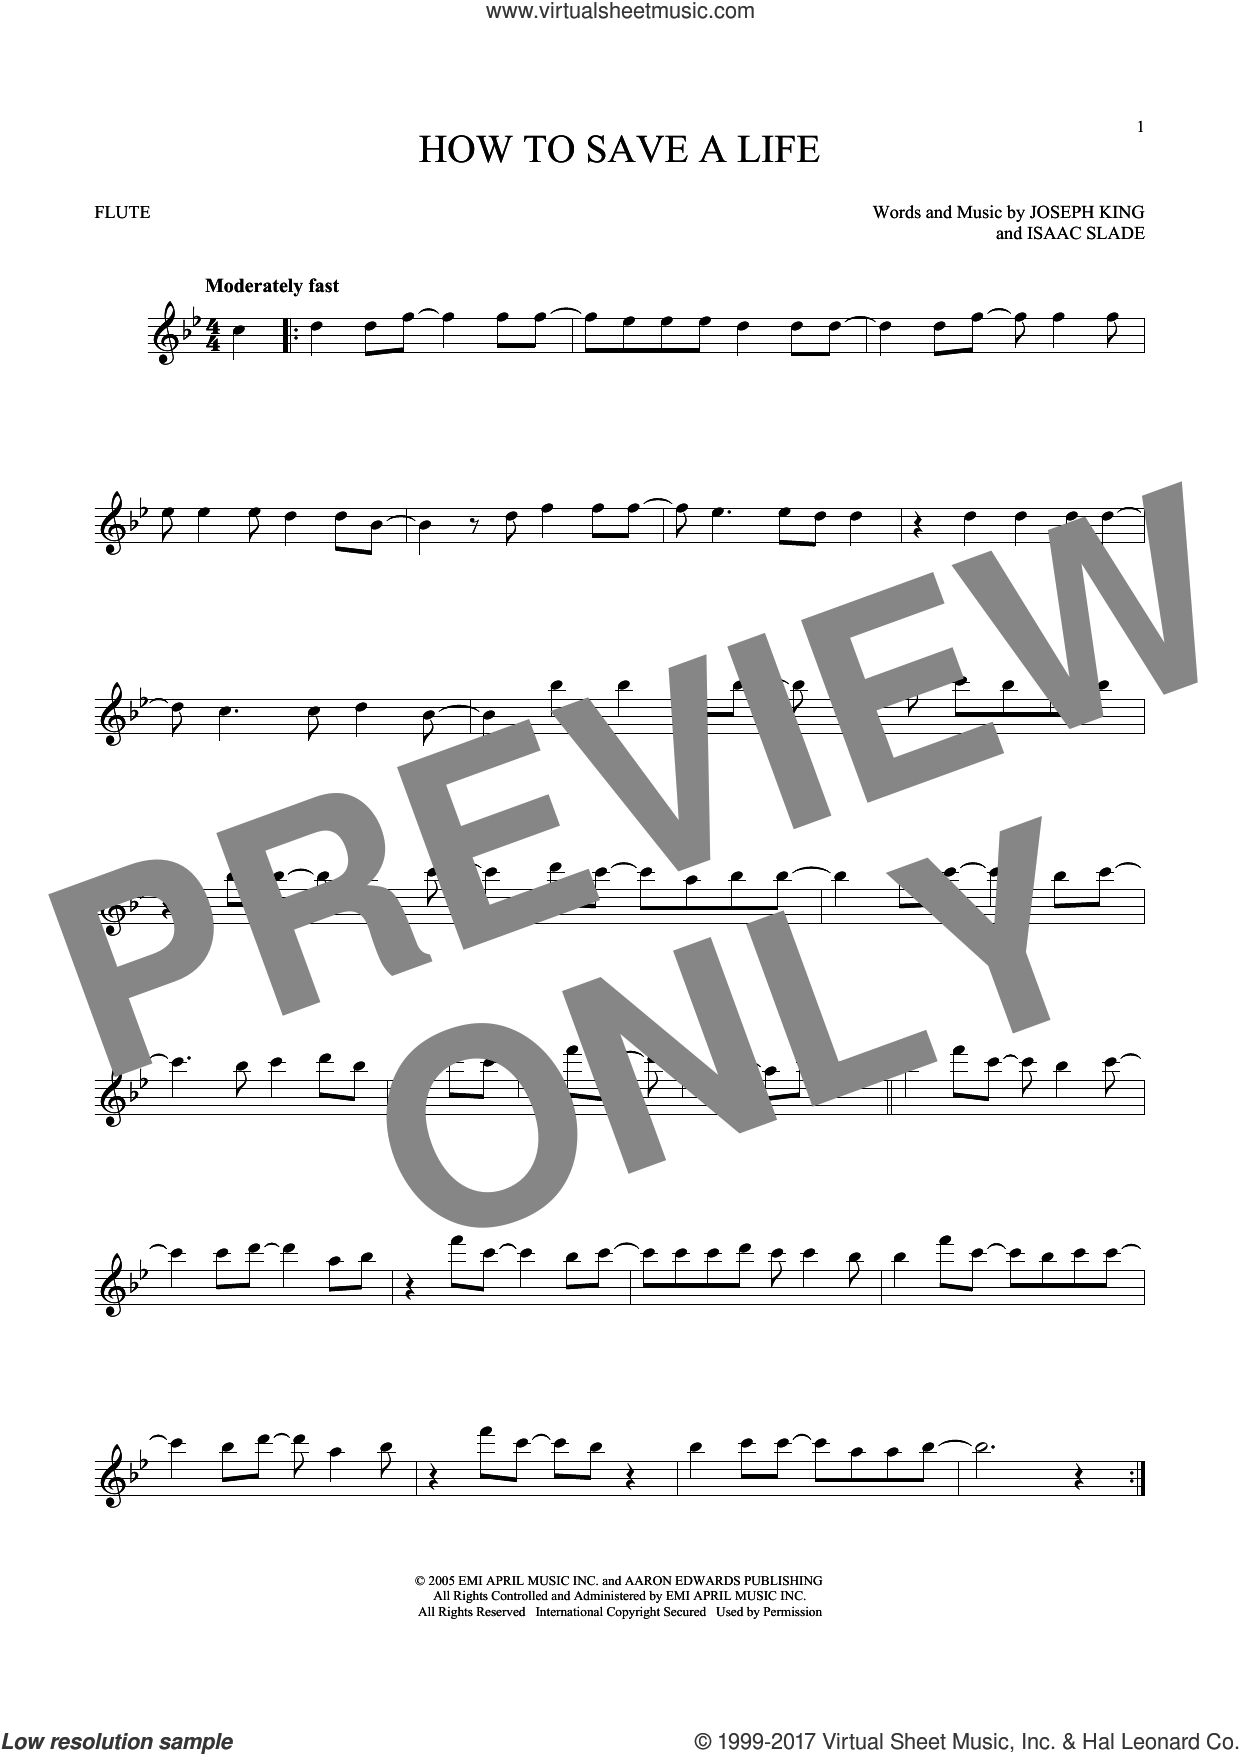 How To Save A Life sheet music for flute solo by Joseph King, The Fray and Isaac Slade. Score Image Preview.